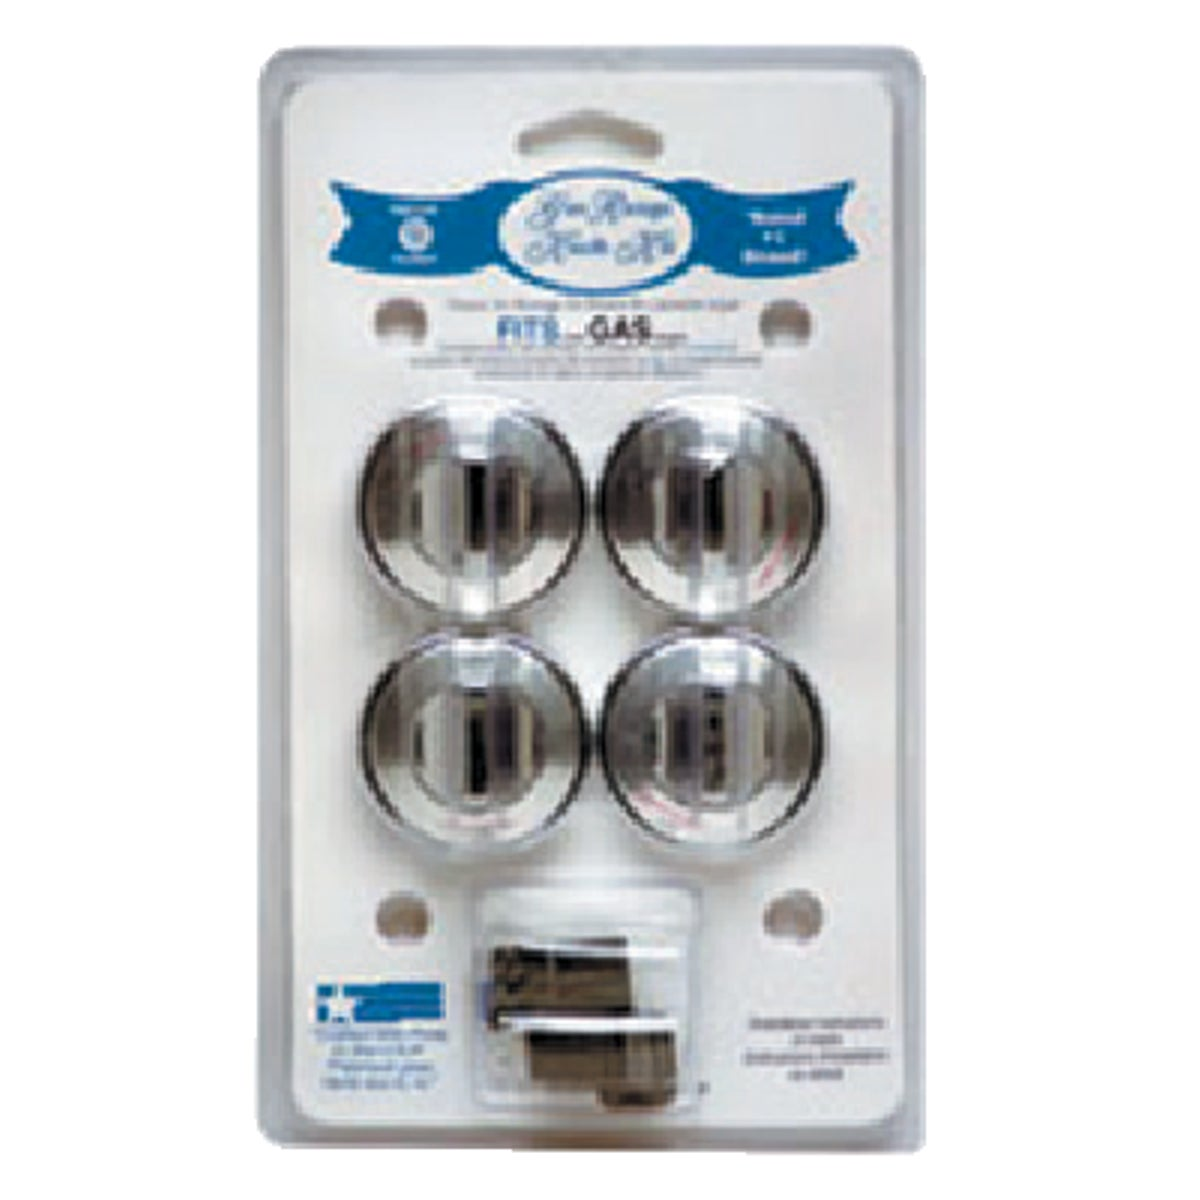 Replacement Gas Stove Range Control Knob Kit Choice Of